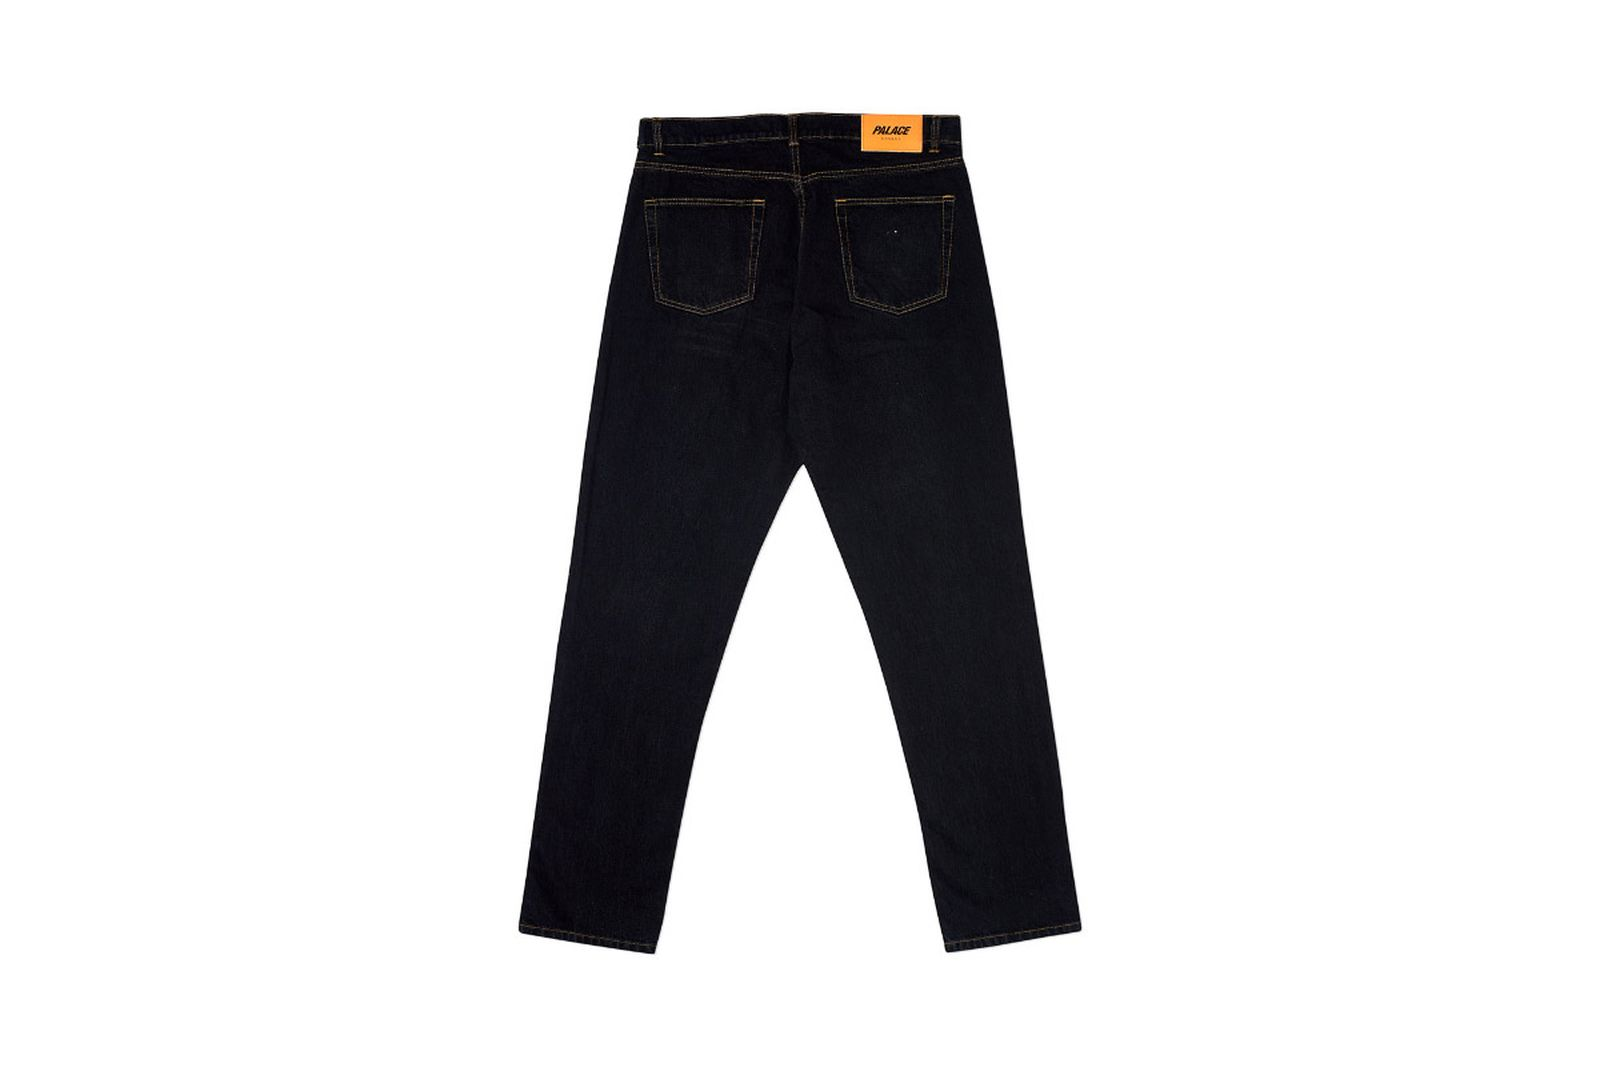 Palace 2019 Autumn Jeans Stonewash Black Back3027 fw19